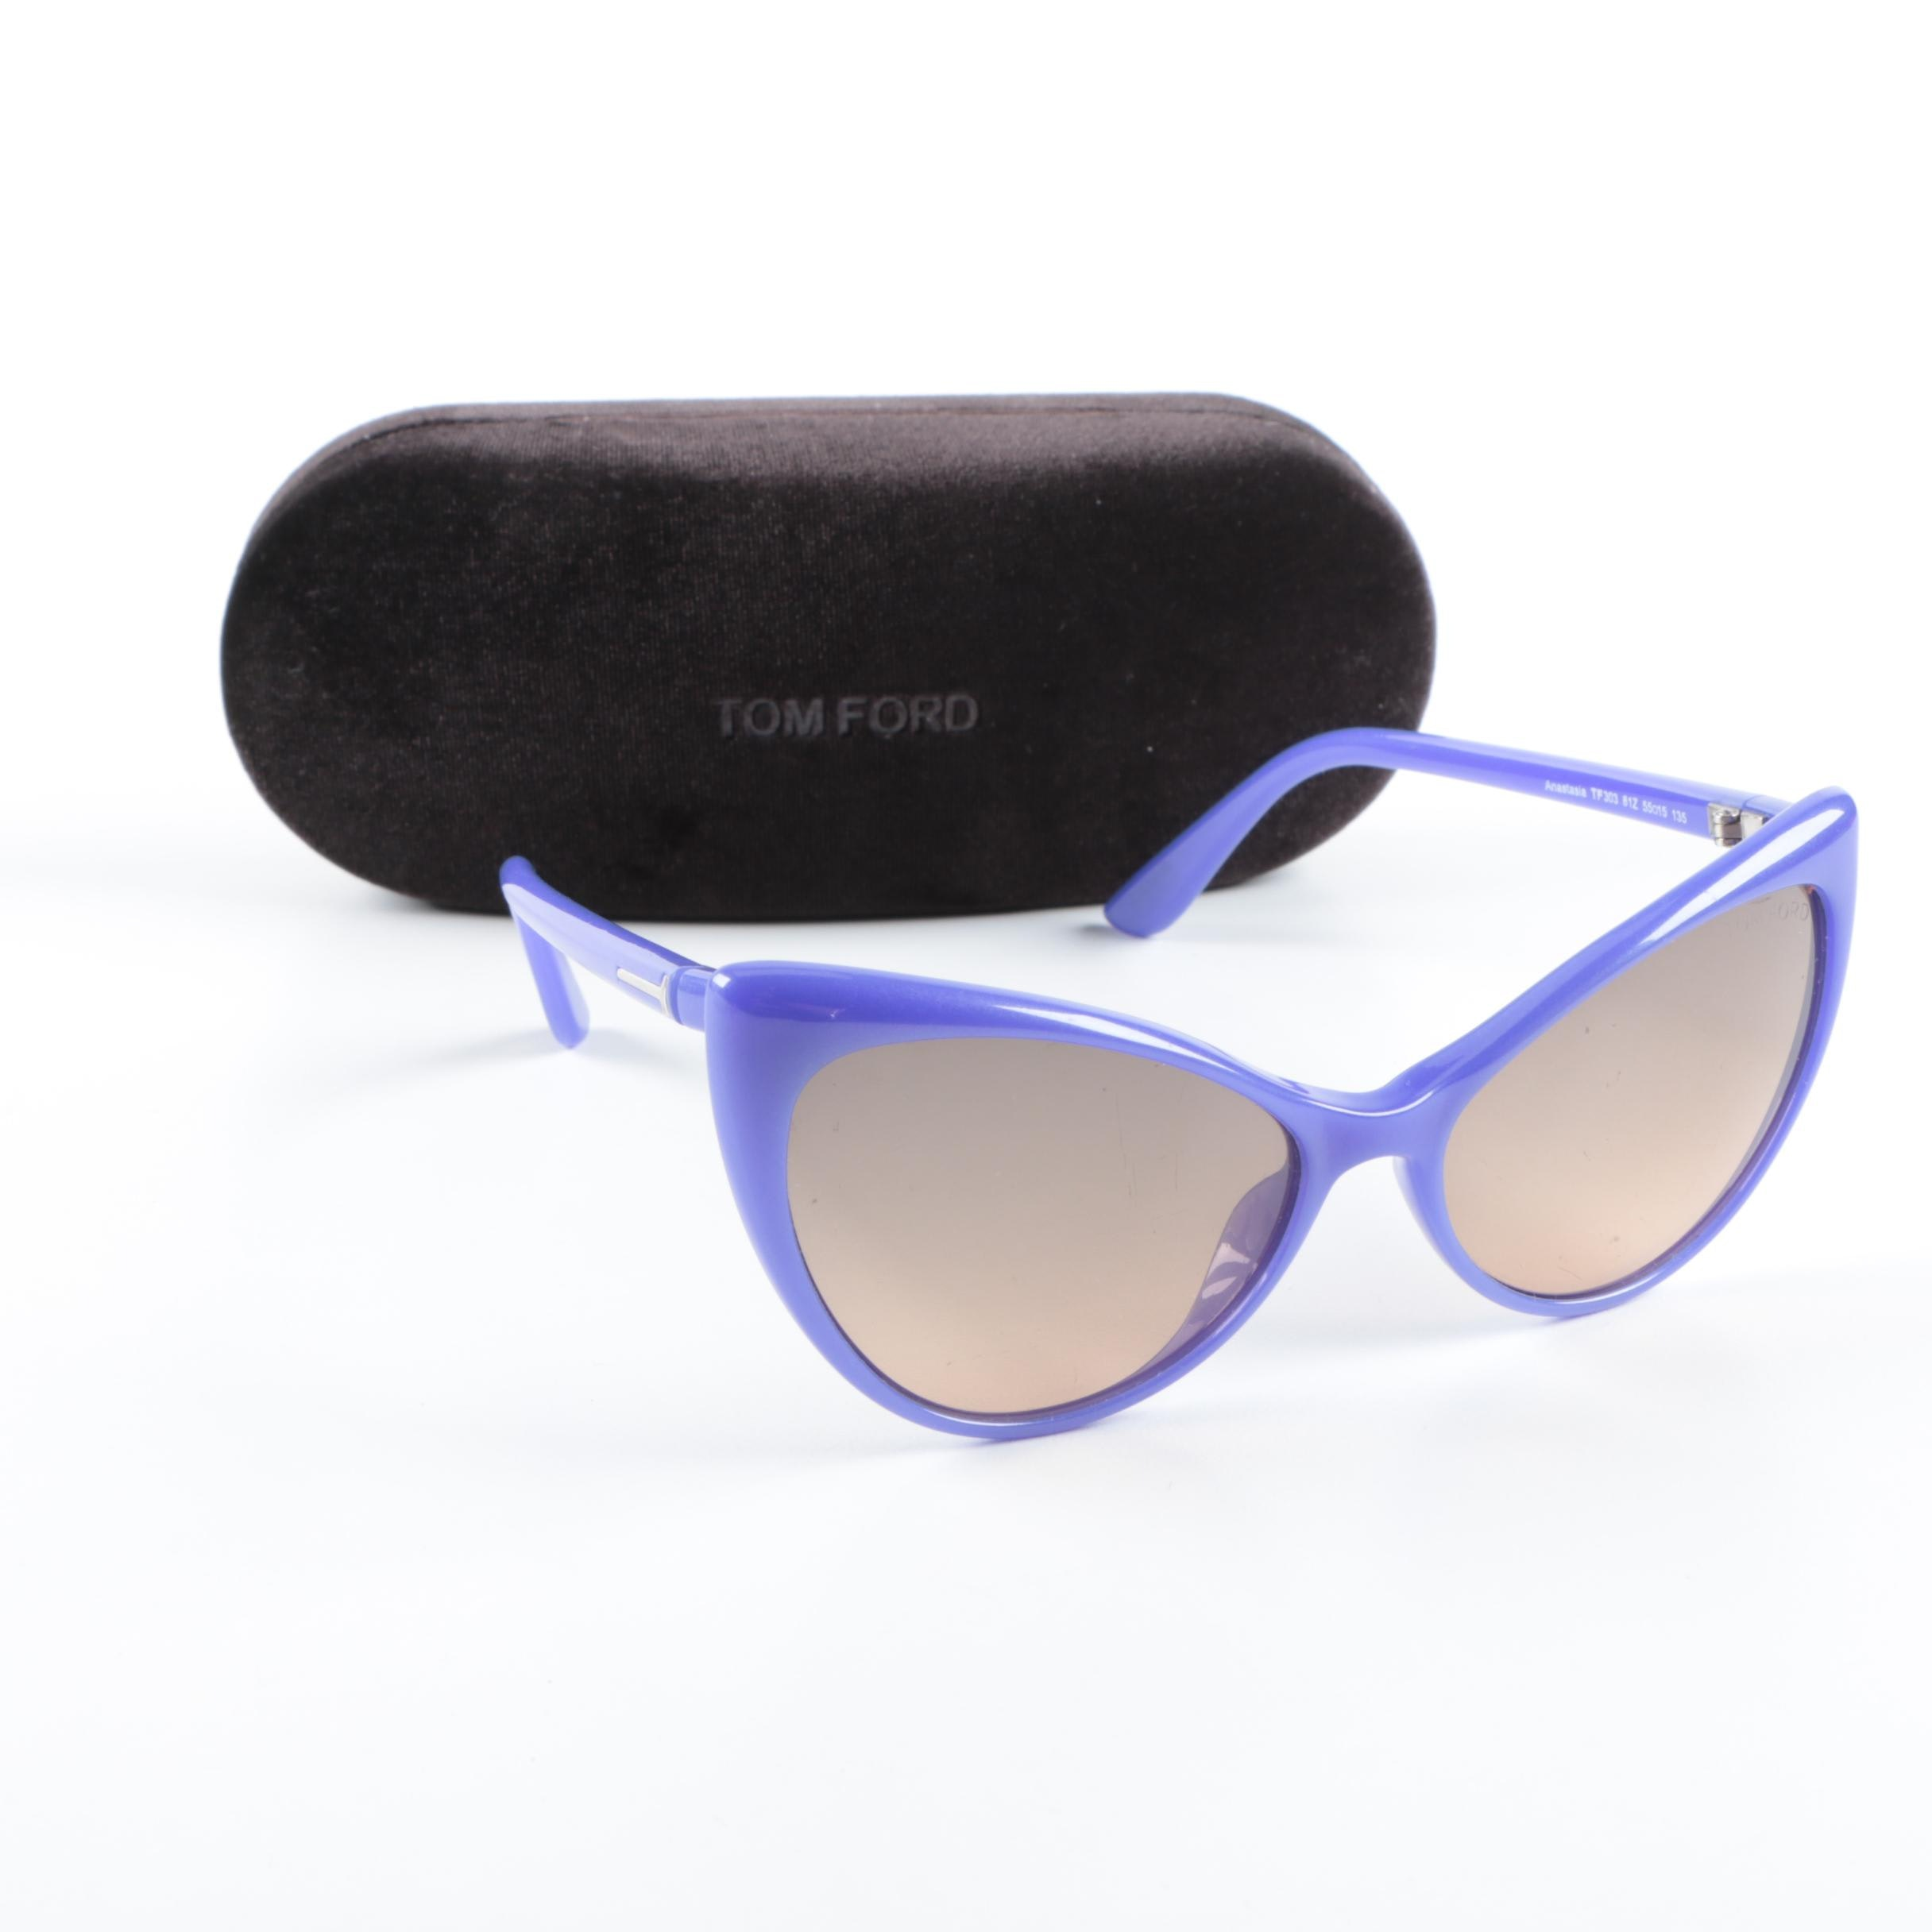 Tom Ford Anastasia Cat Eye Sunglasses with Case